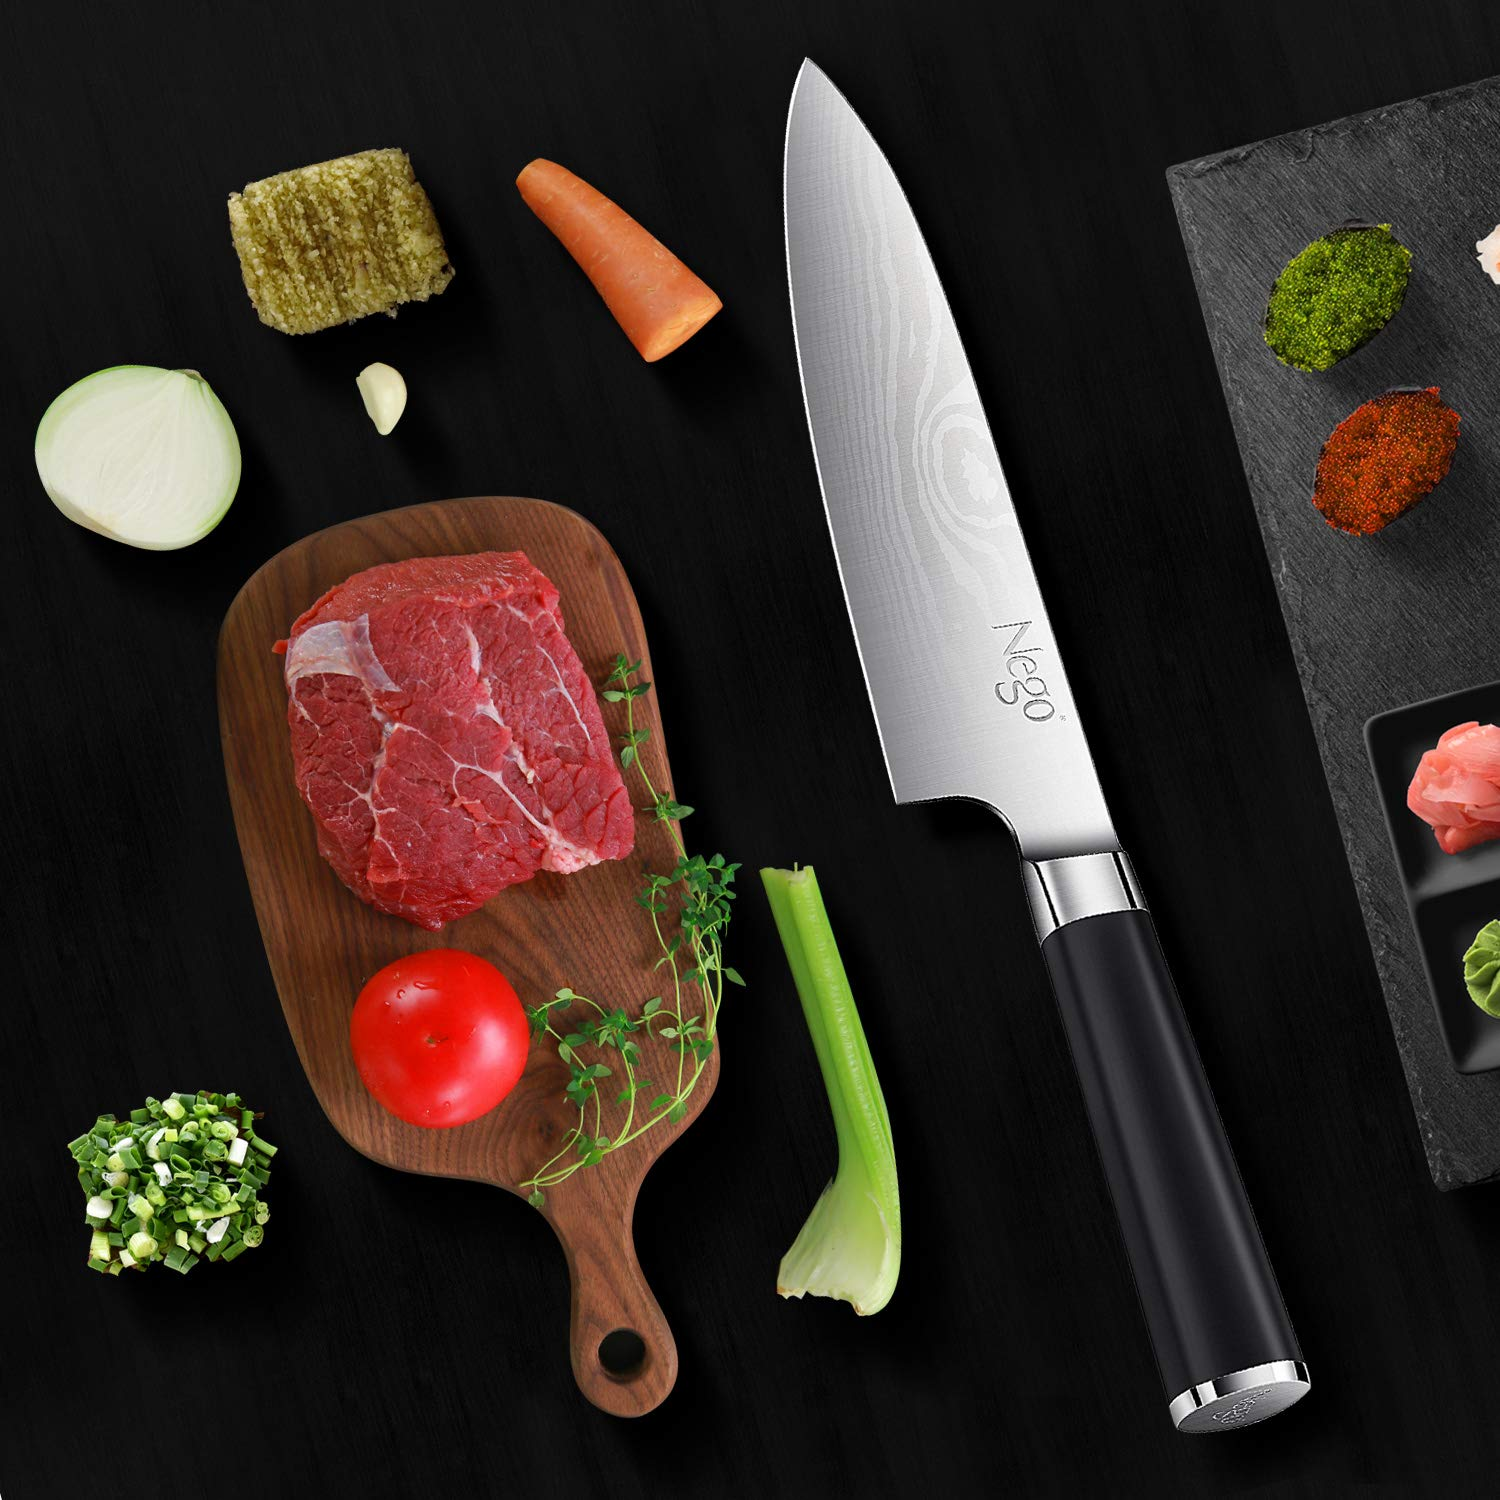 Chef Knife - Pro Chef knives 8 inch Cooking knife, German High Carbon Stainless Steel Razor Sharp Blade Stain Resistant, Best Choice for Restaurant and Home Kitchen by Nego (Image #6)